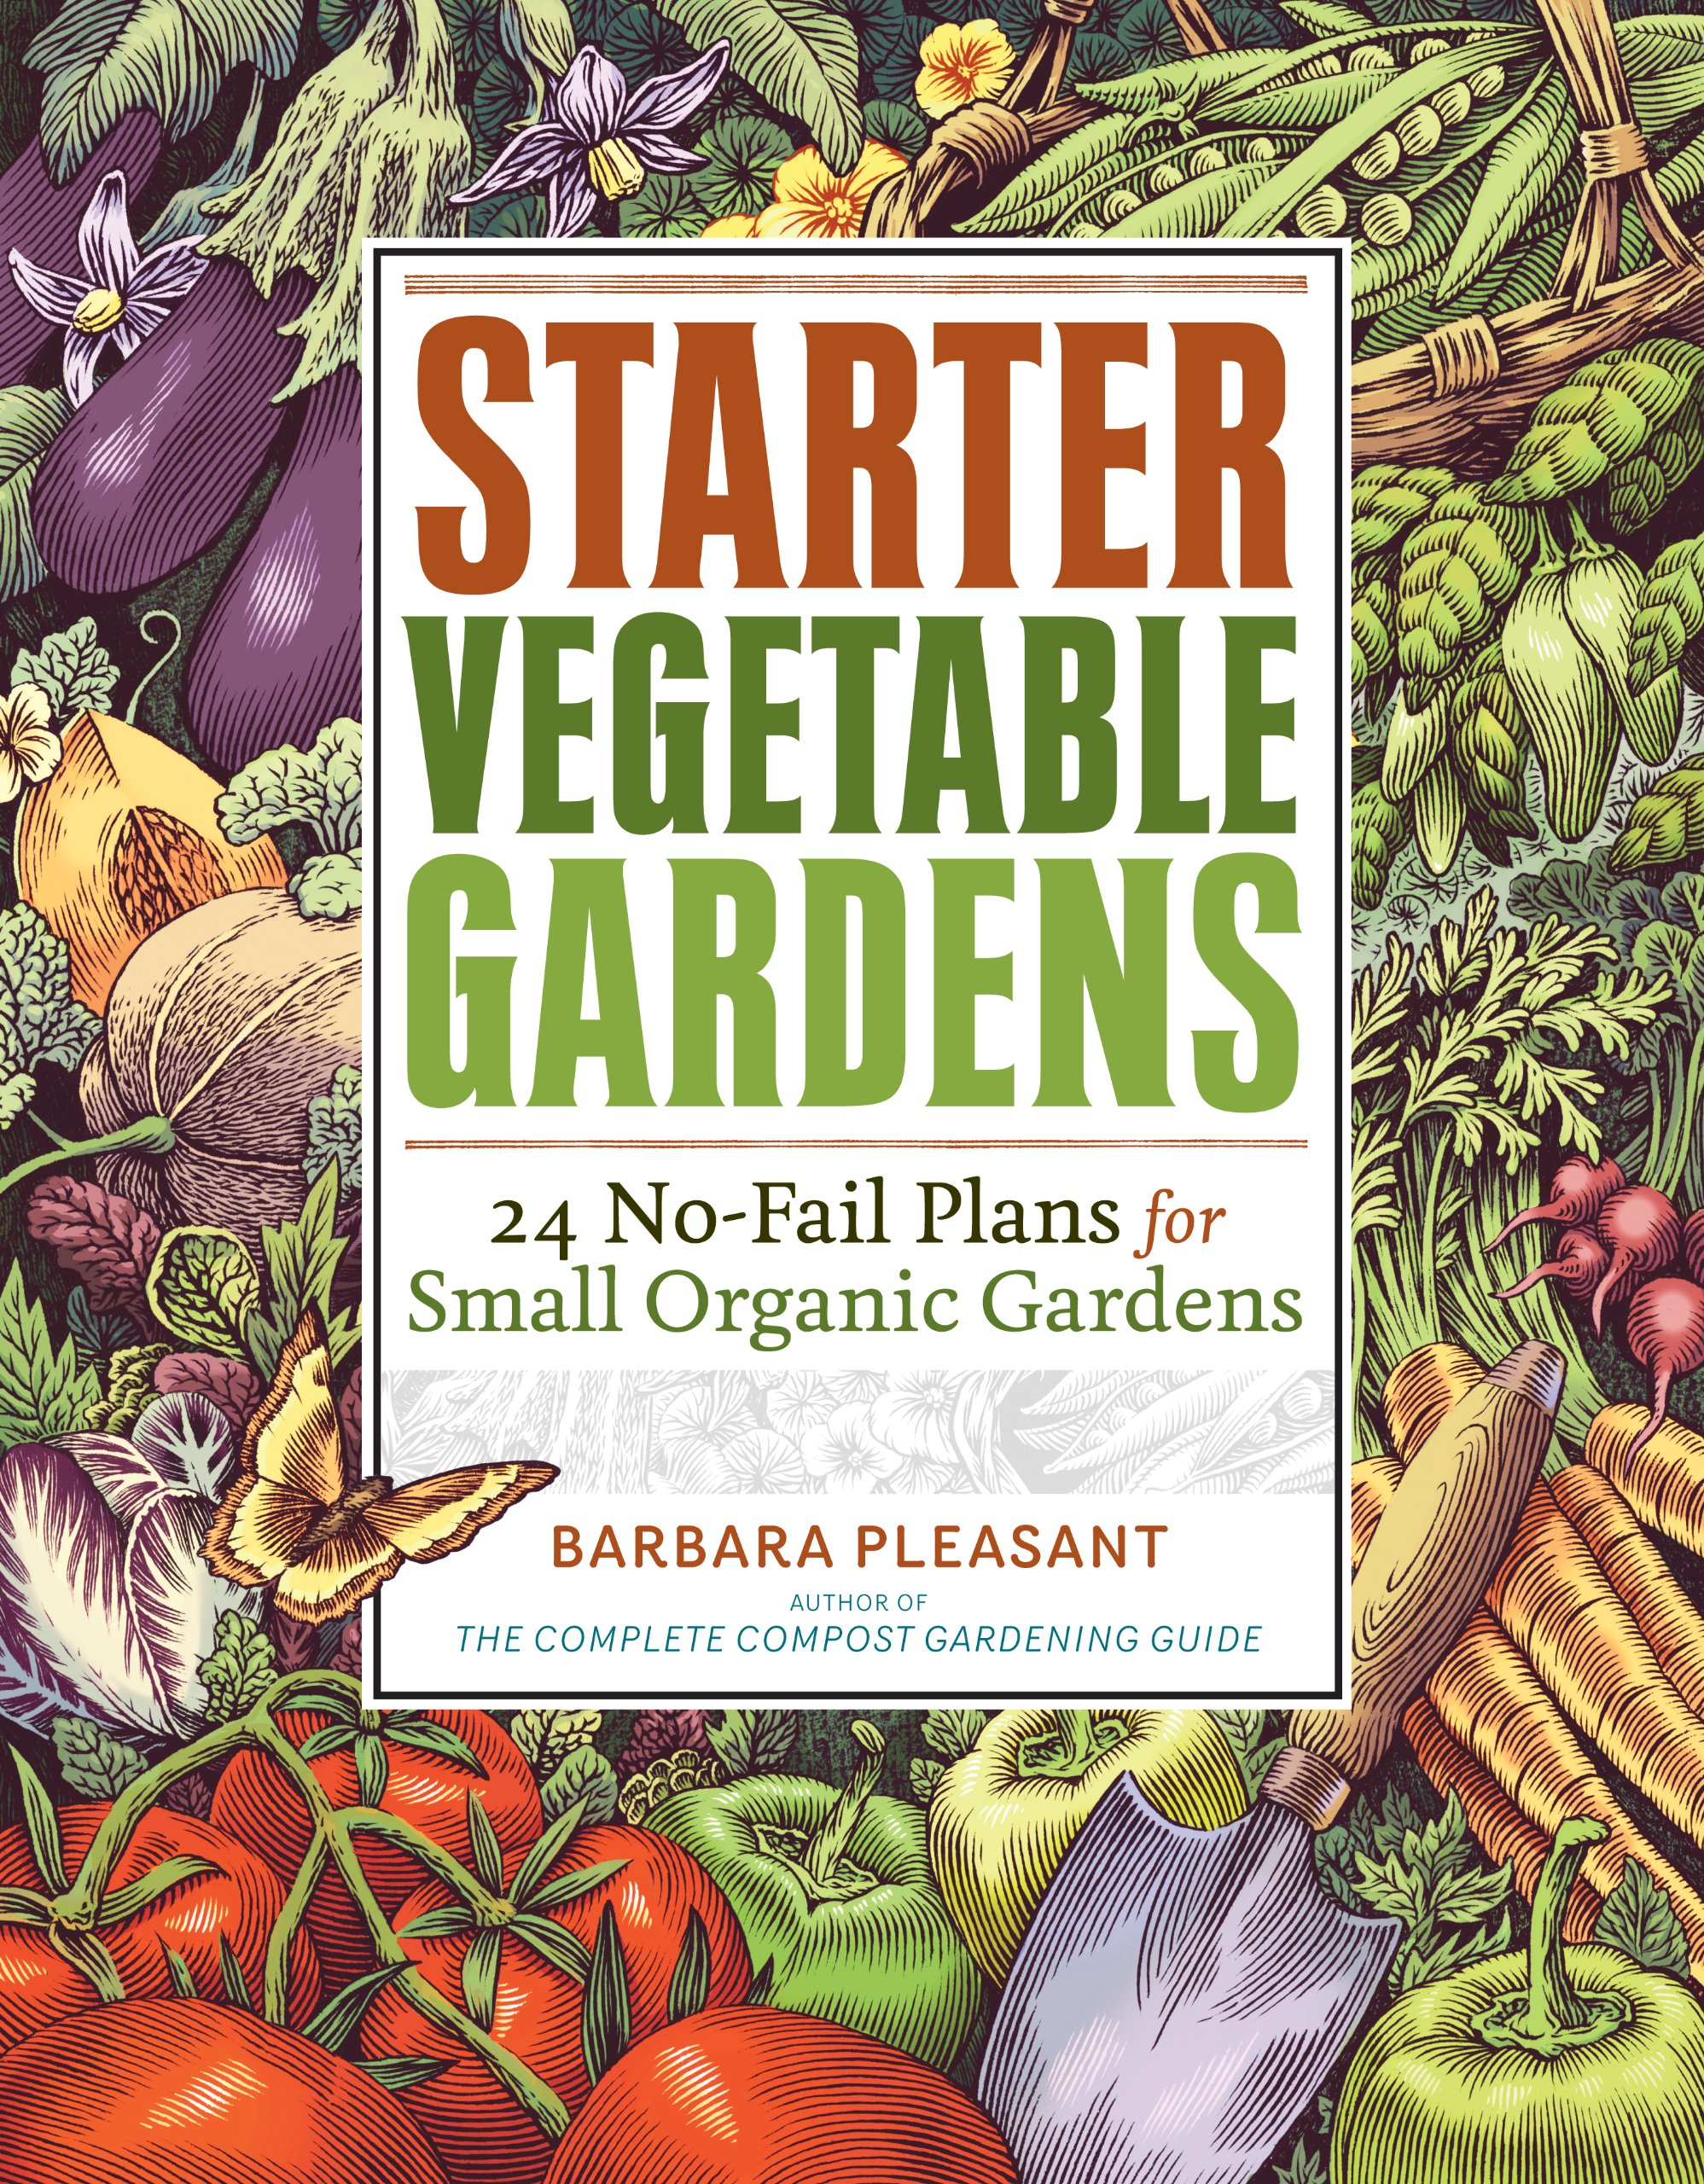 Starter Vegetable Gardens: 24 No-Fail Plans for Small Organic Gardens:  Barbara Pleasant: 9781603425292: Amazon.com: Books